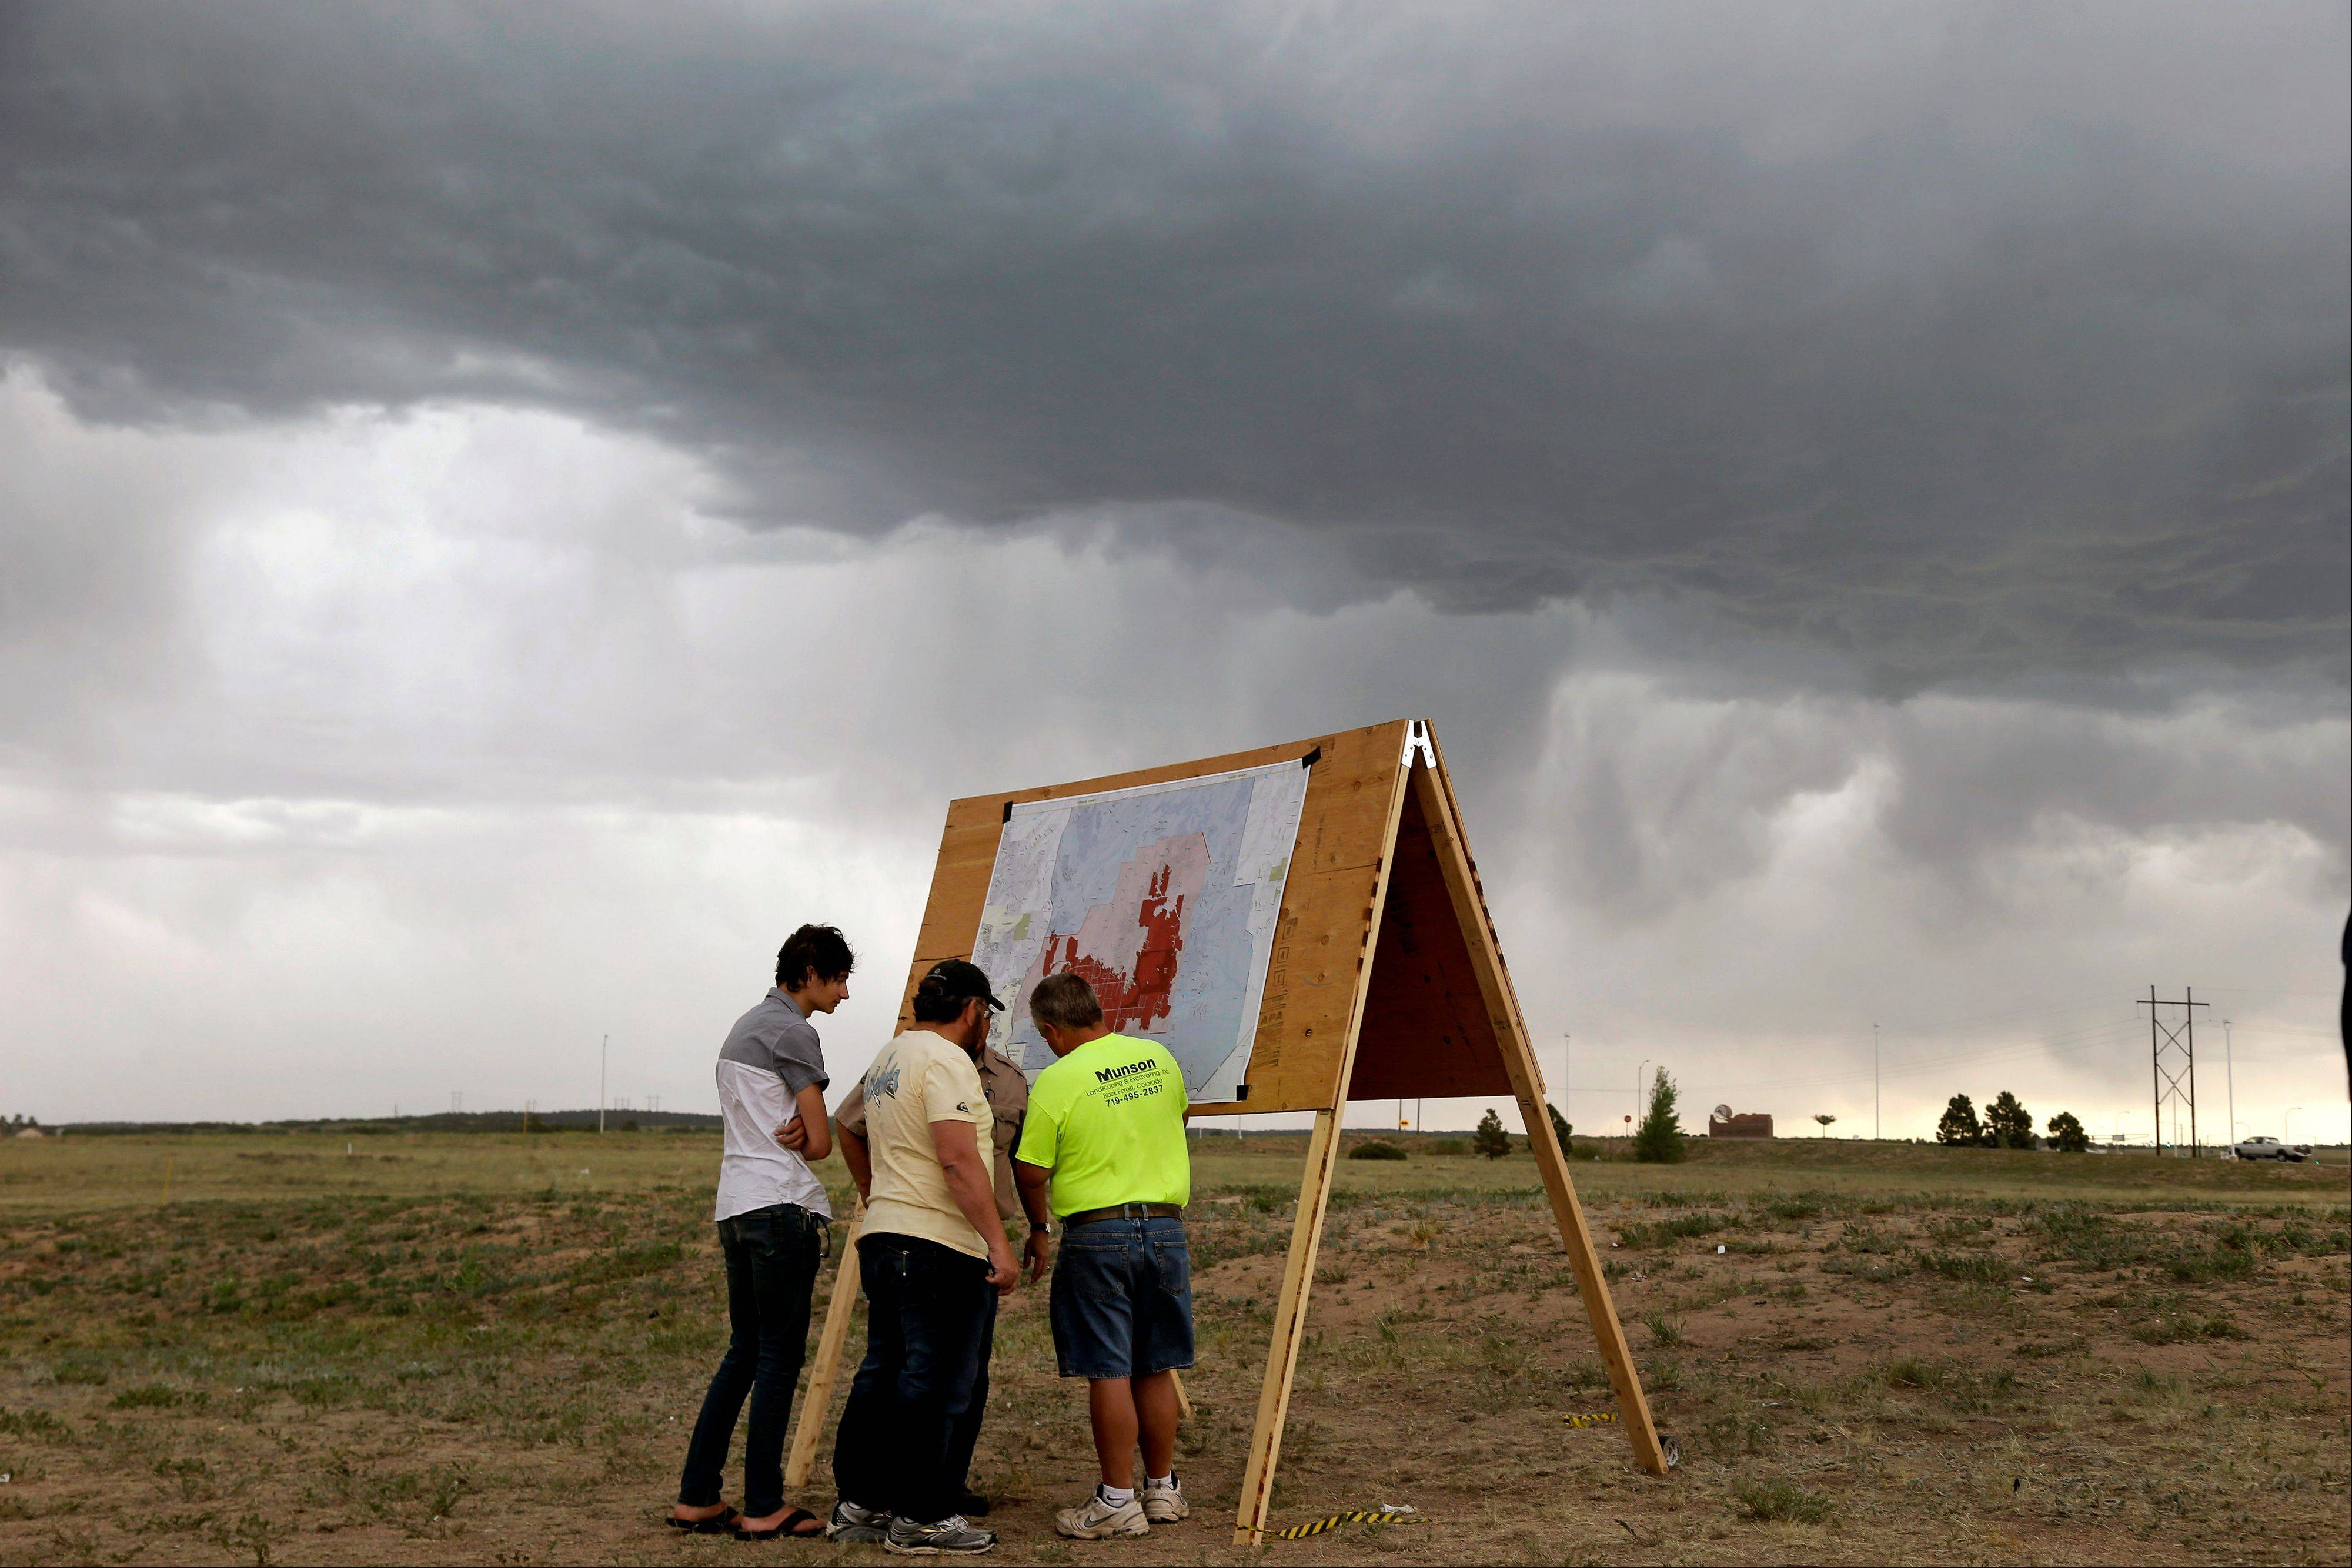 Residents look at a map detailing the progress of the Black Forest wildfire Sunday in Colorado Springs, Colo. Fire crews were putting out hot spots Sunday to prevent flare ups in heavily wooded Black Forest, where hundreds of houses have been destroyed.